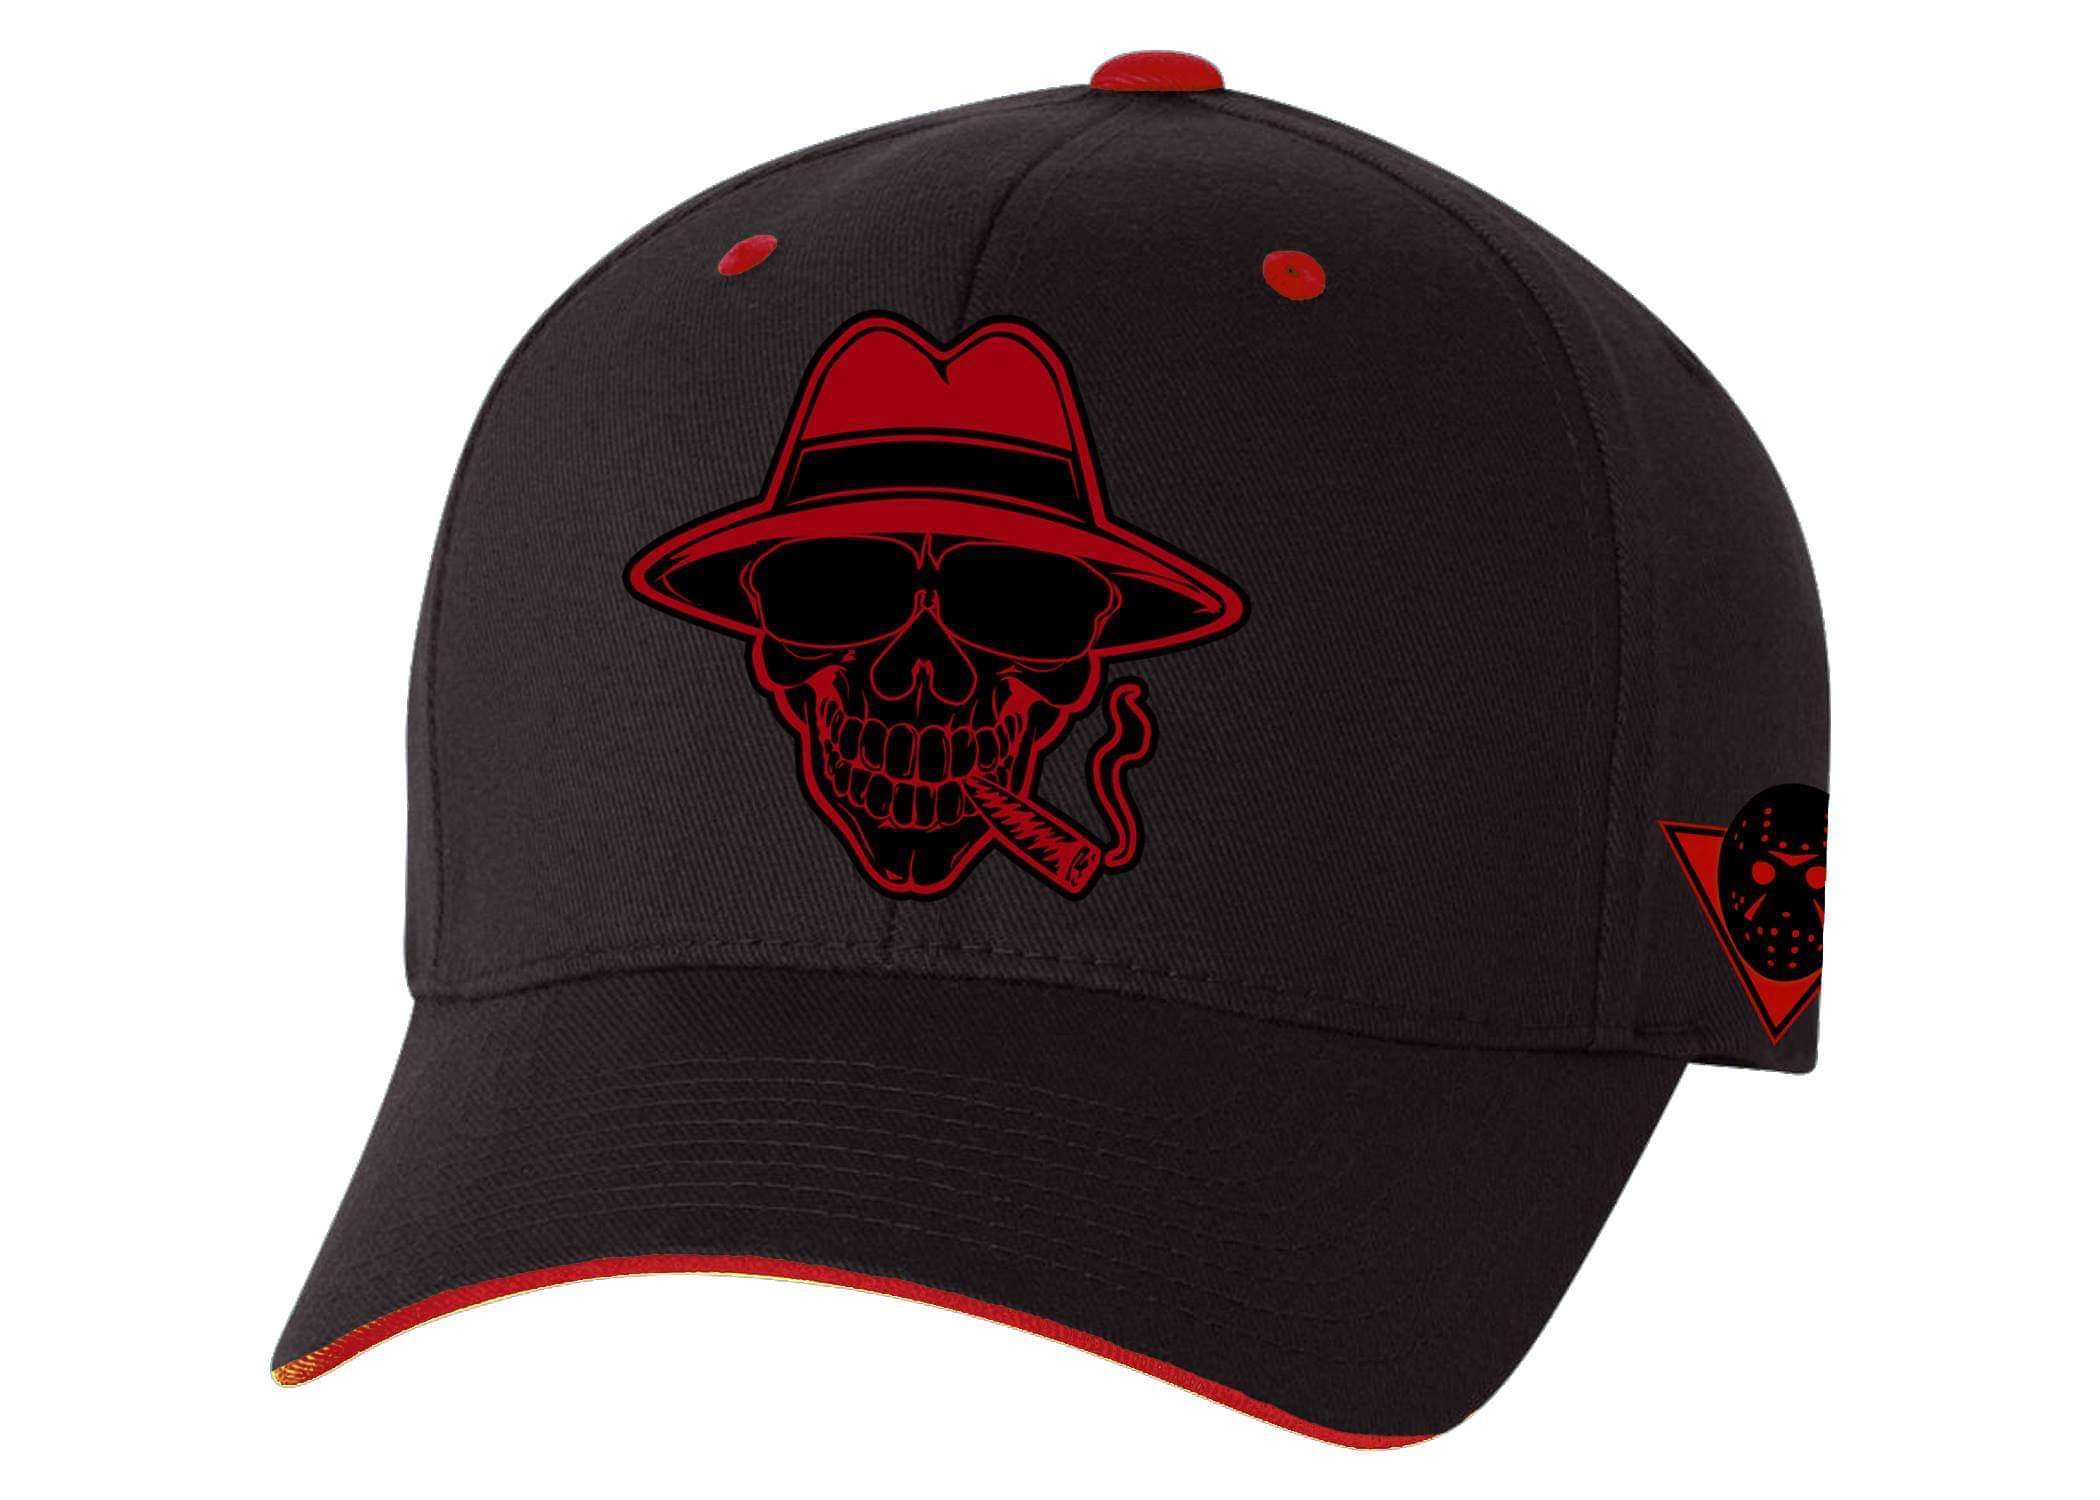 Mobstyle 3-D Embroidered Hat